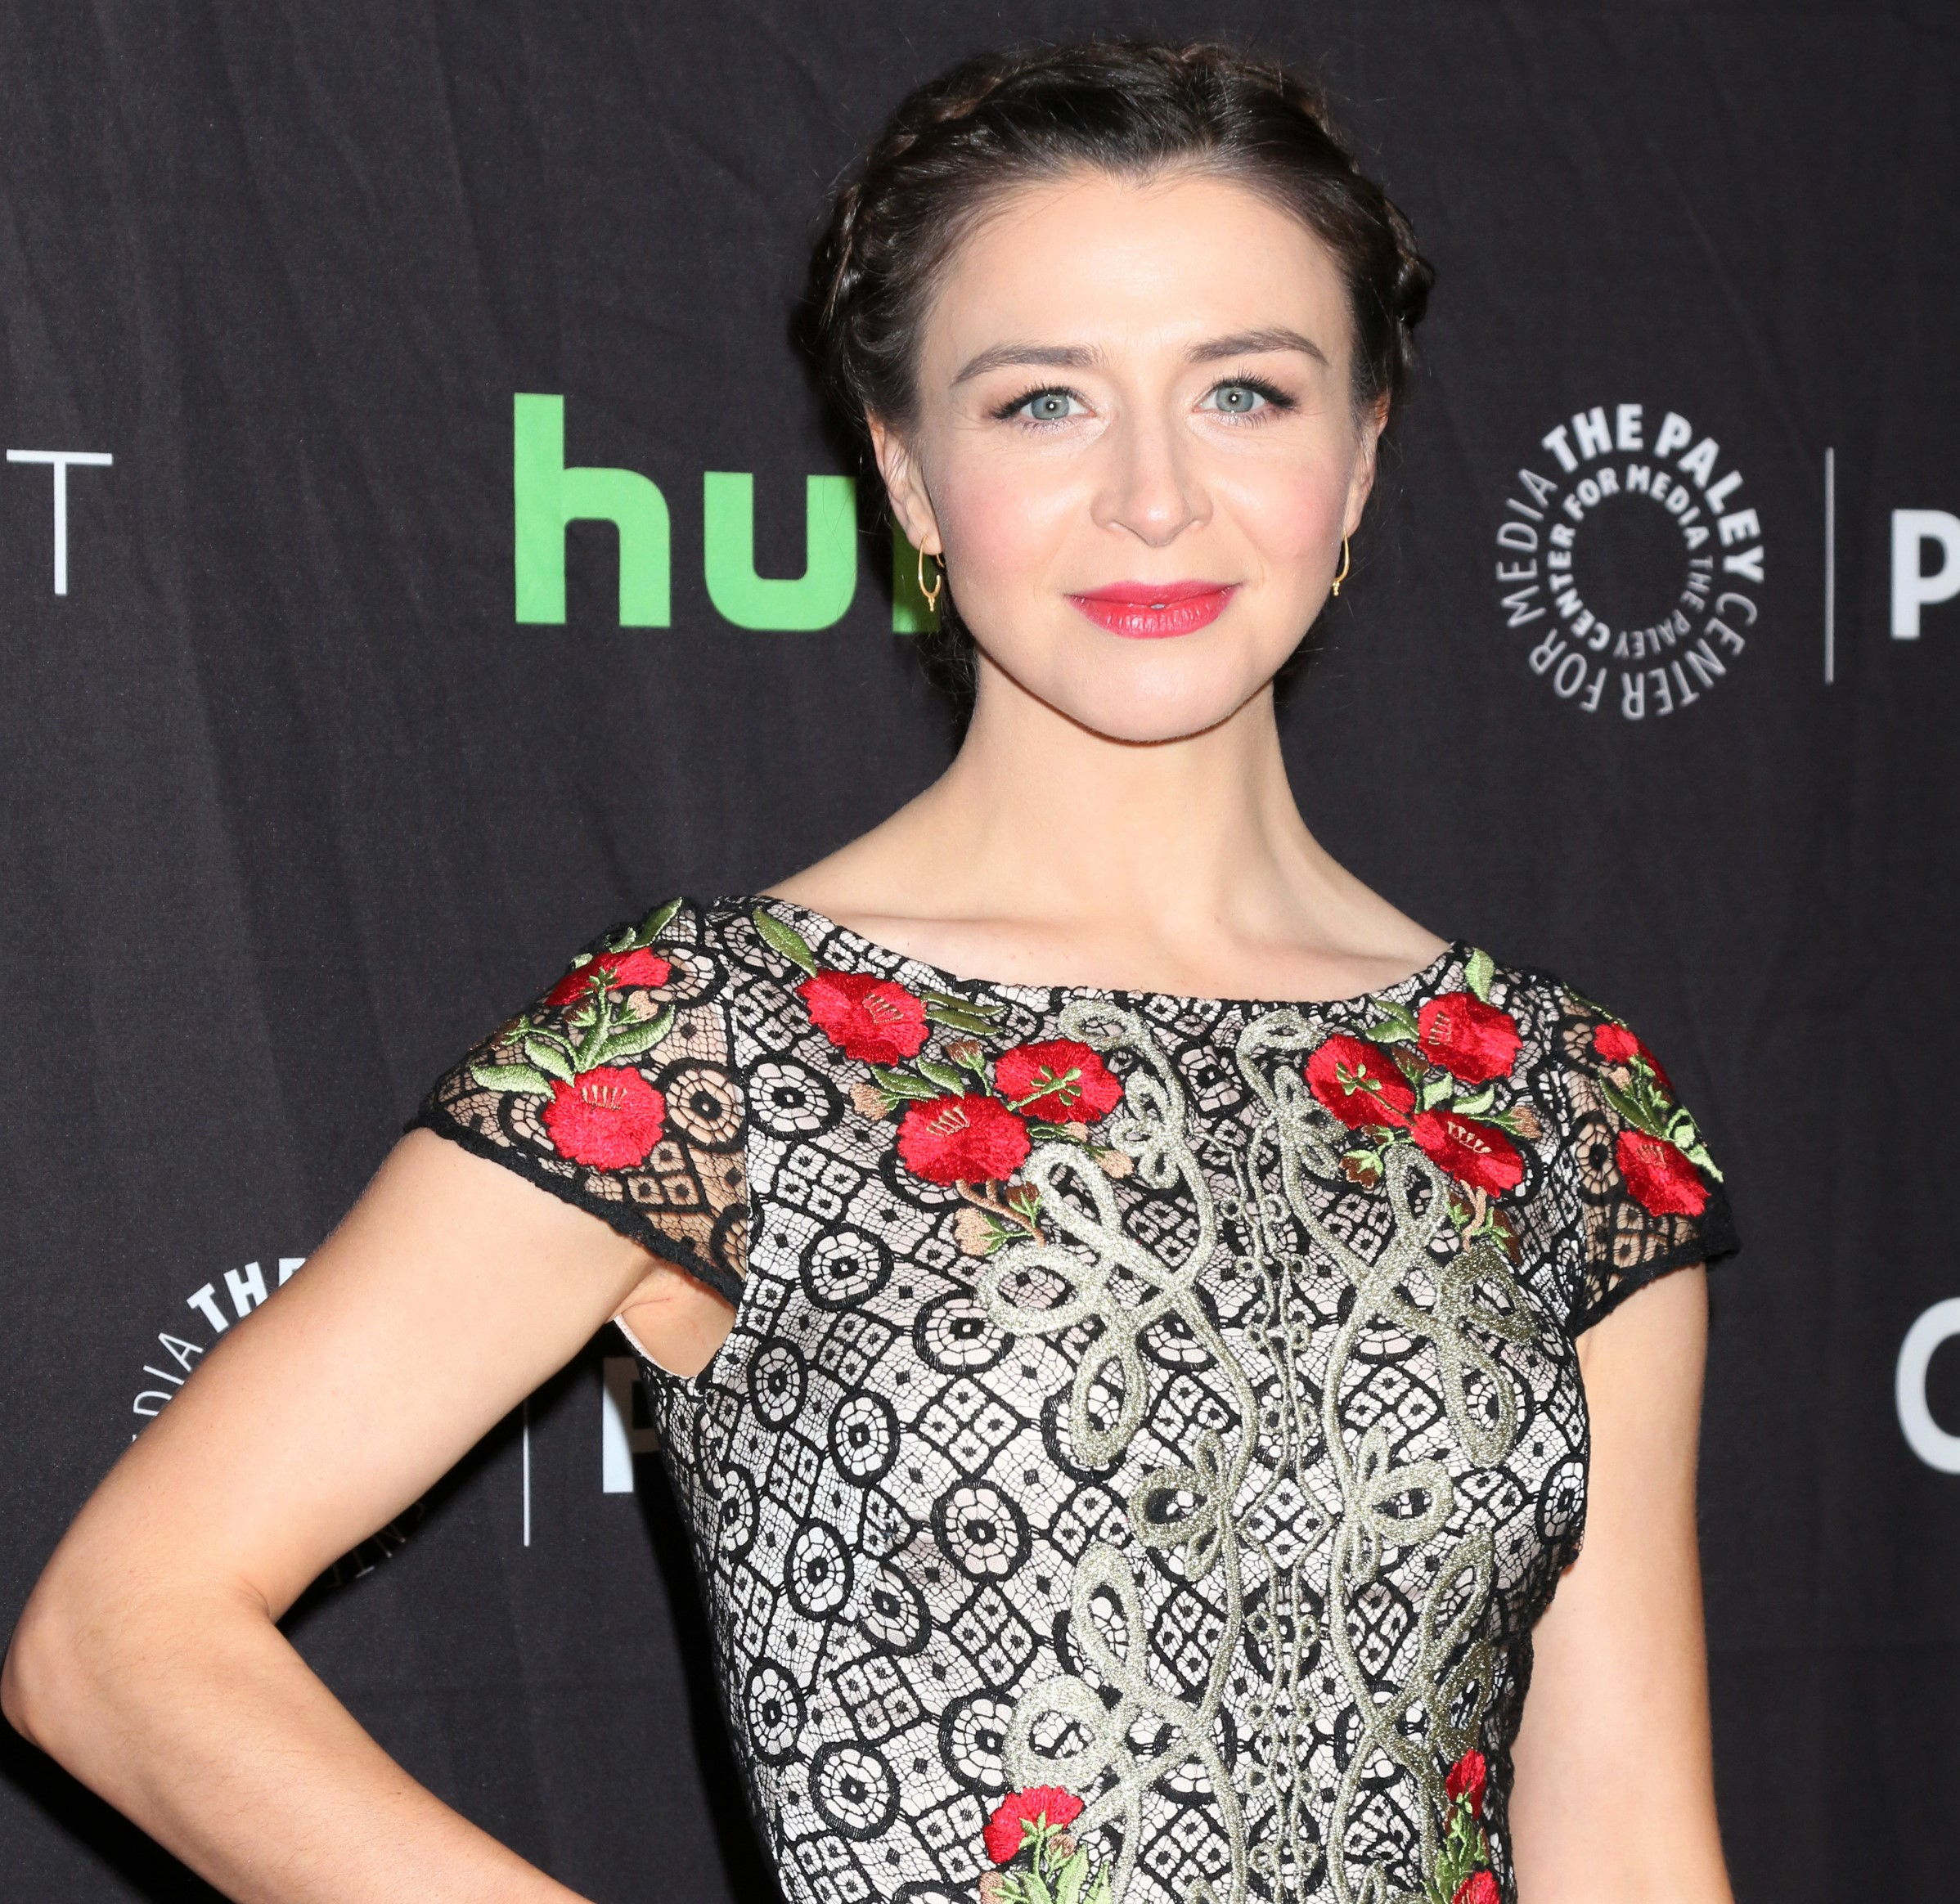 Caterina Scorsone Supports Down Syndrome Awareness Month with Photos of Daughter Paloma Michaela